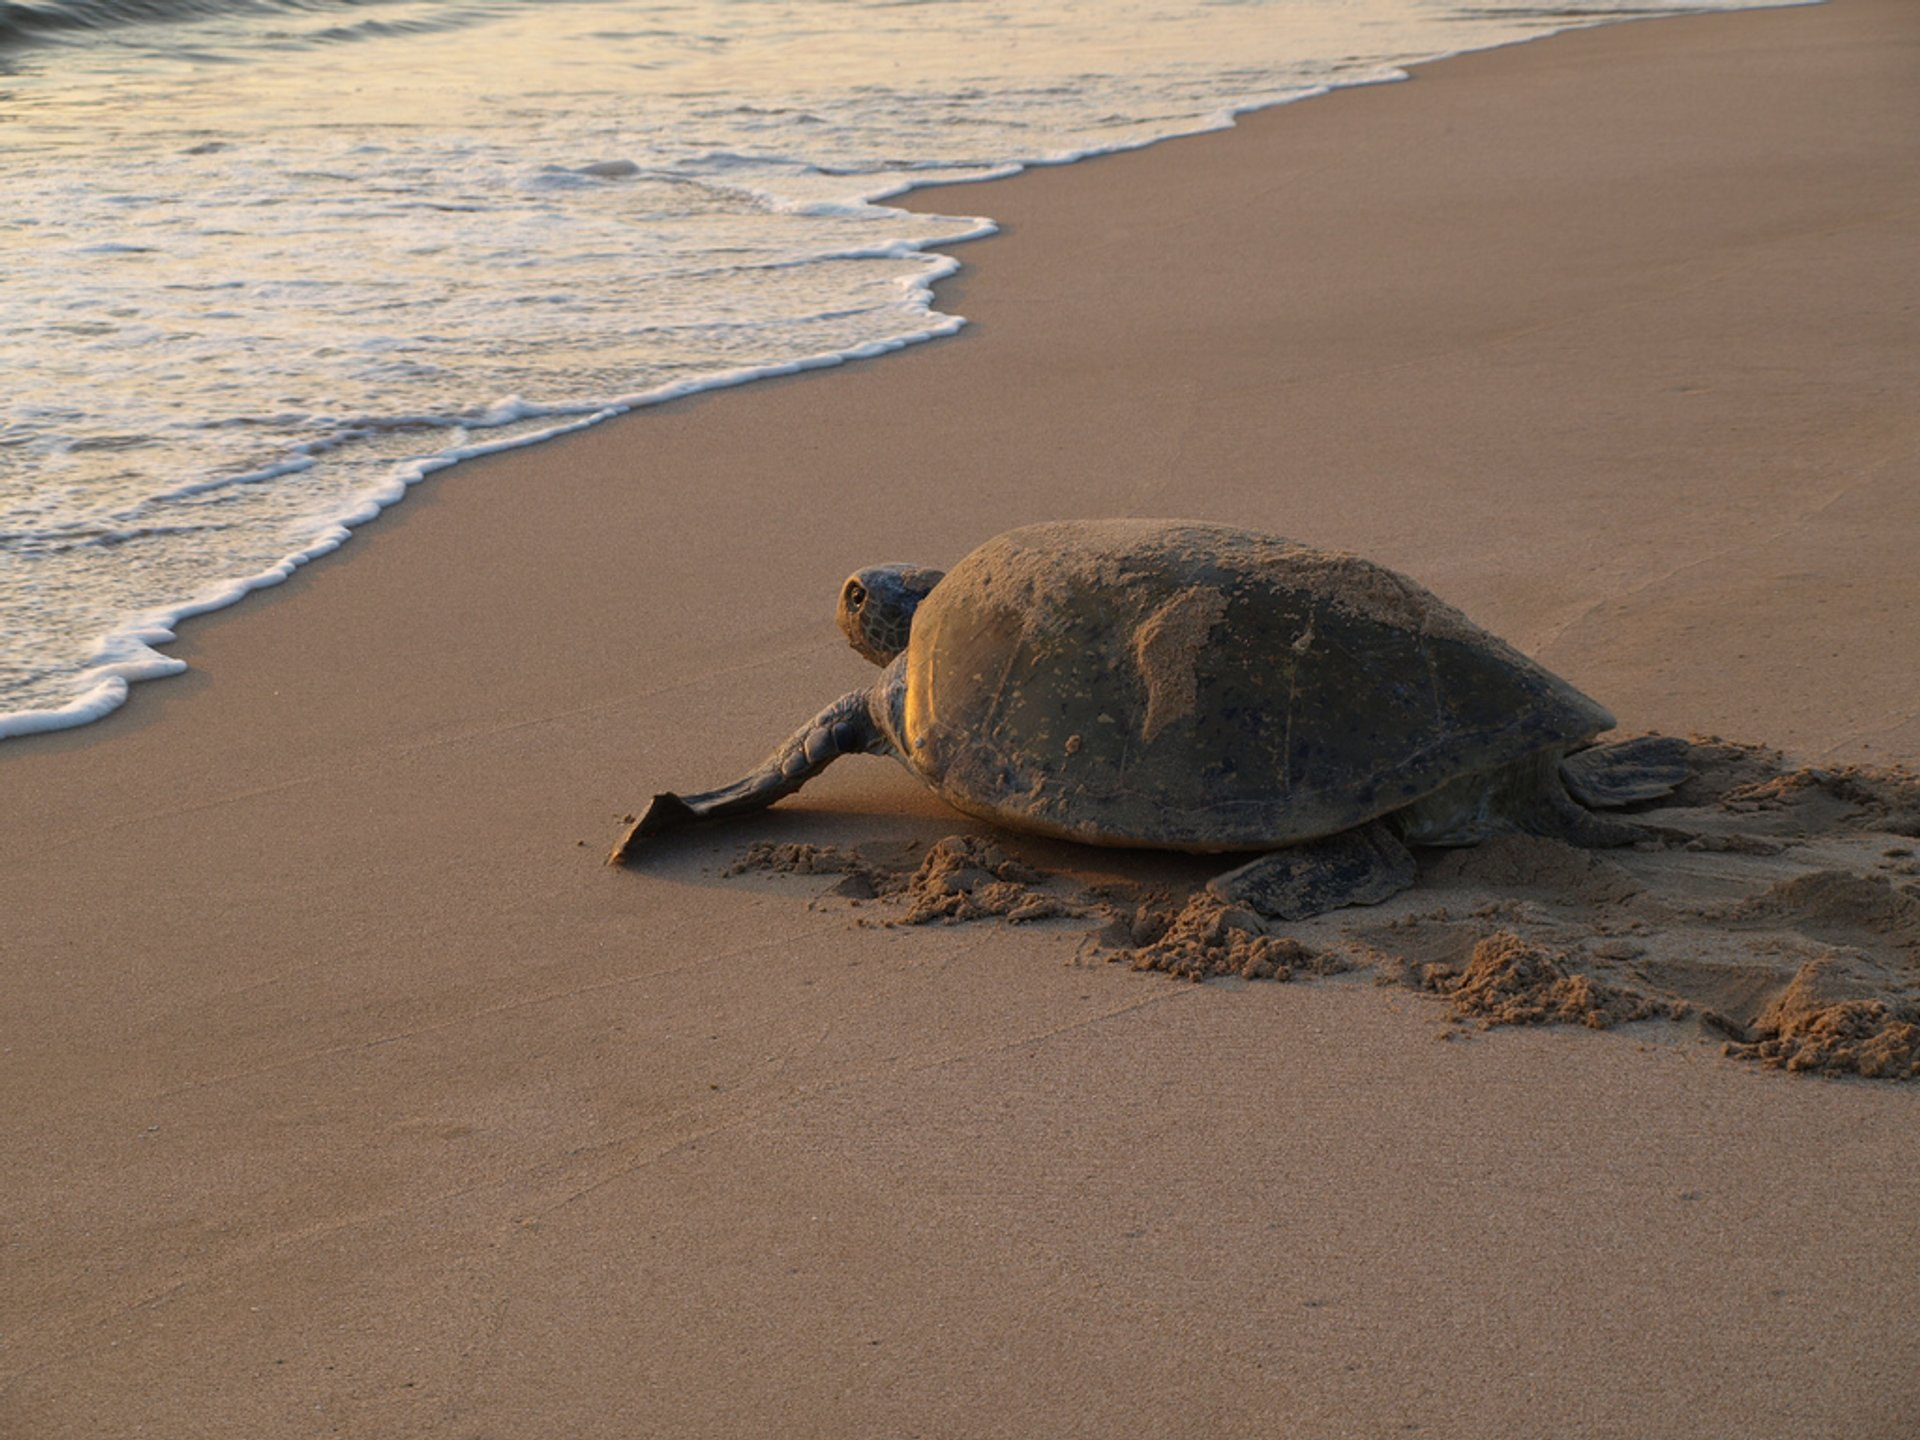 Turtle Nesting and Hatching in Oman 2019 - Best Time